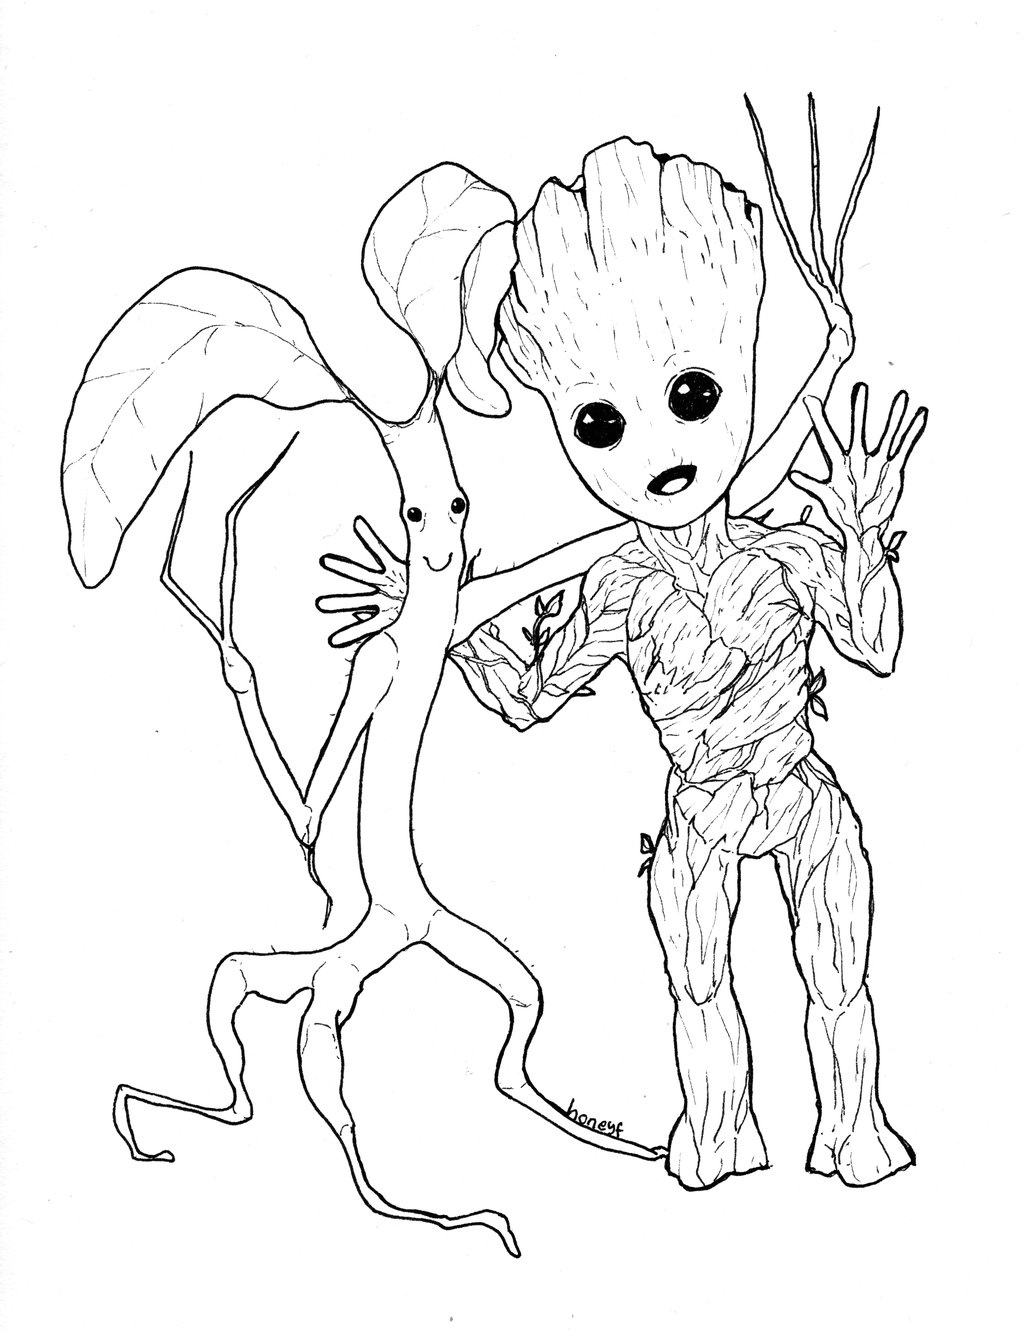 Groot Coloring Pages - Coloring Home